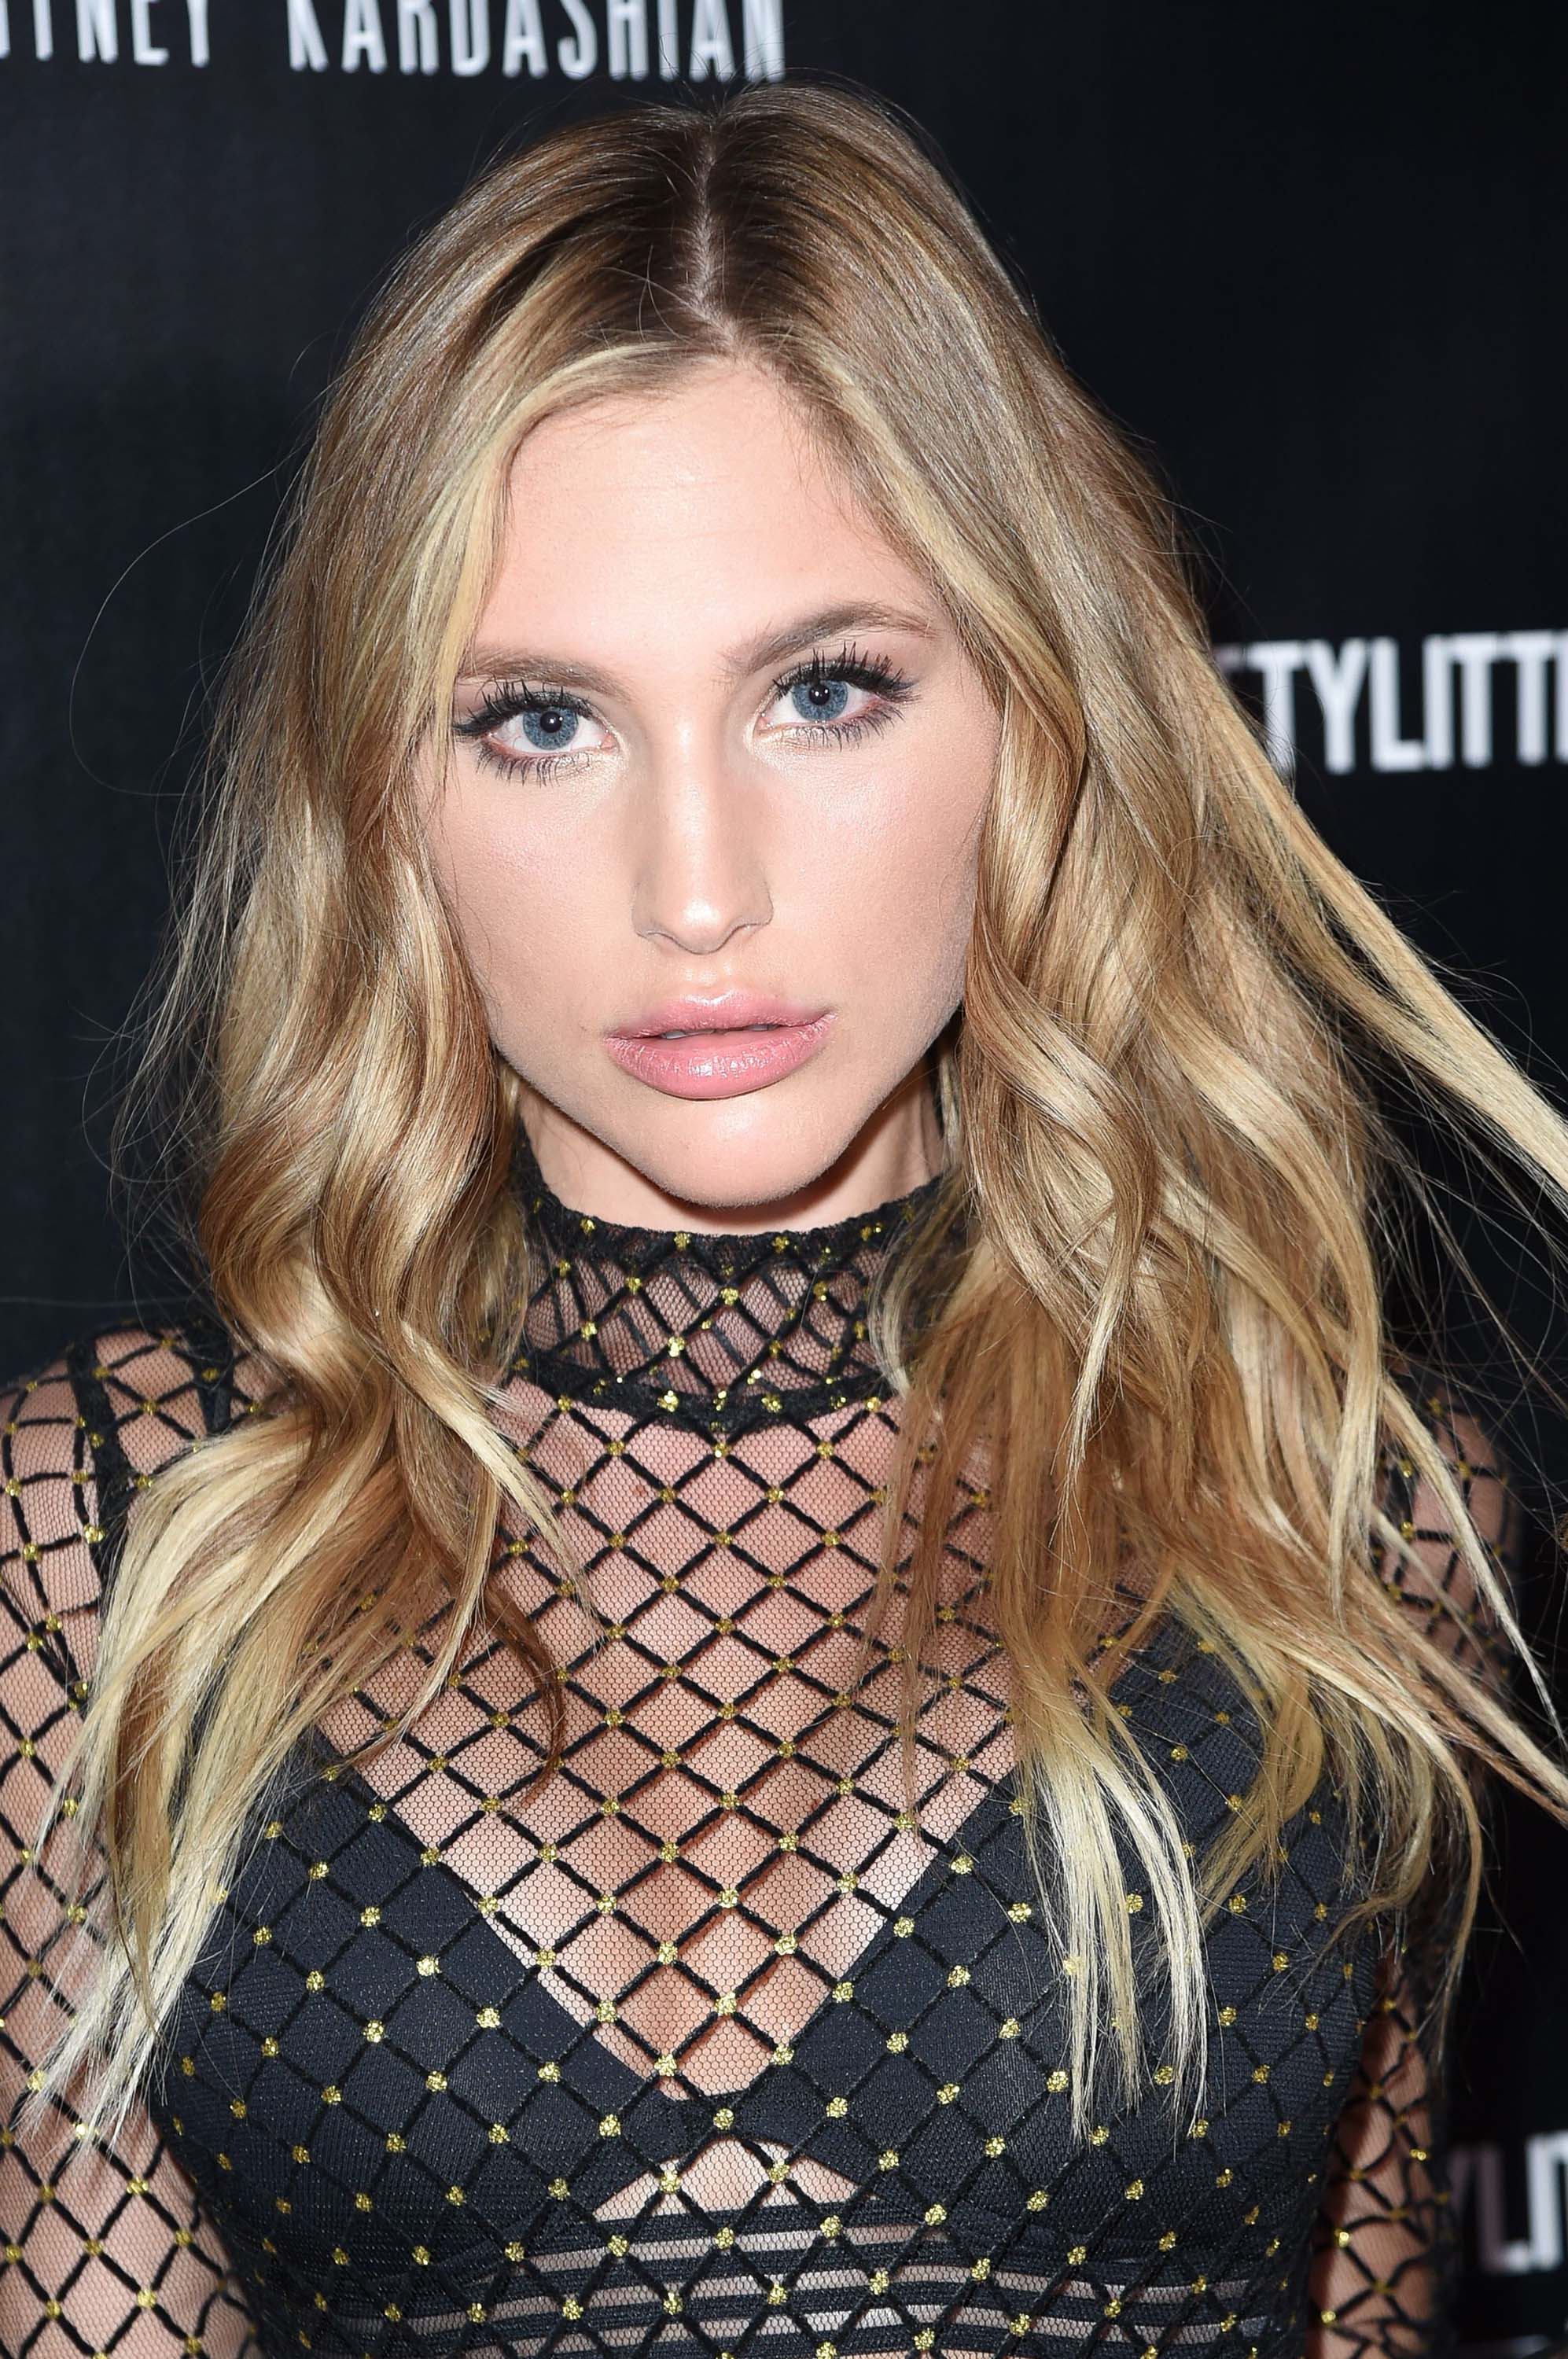 Liberty Netuschil attends PrettyLittleThing Launch Party